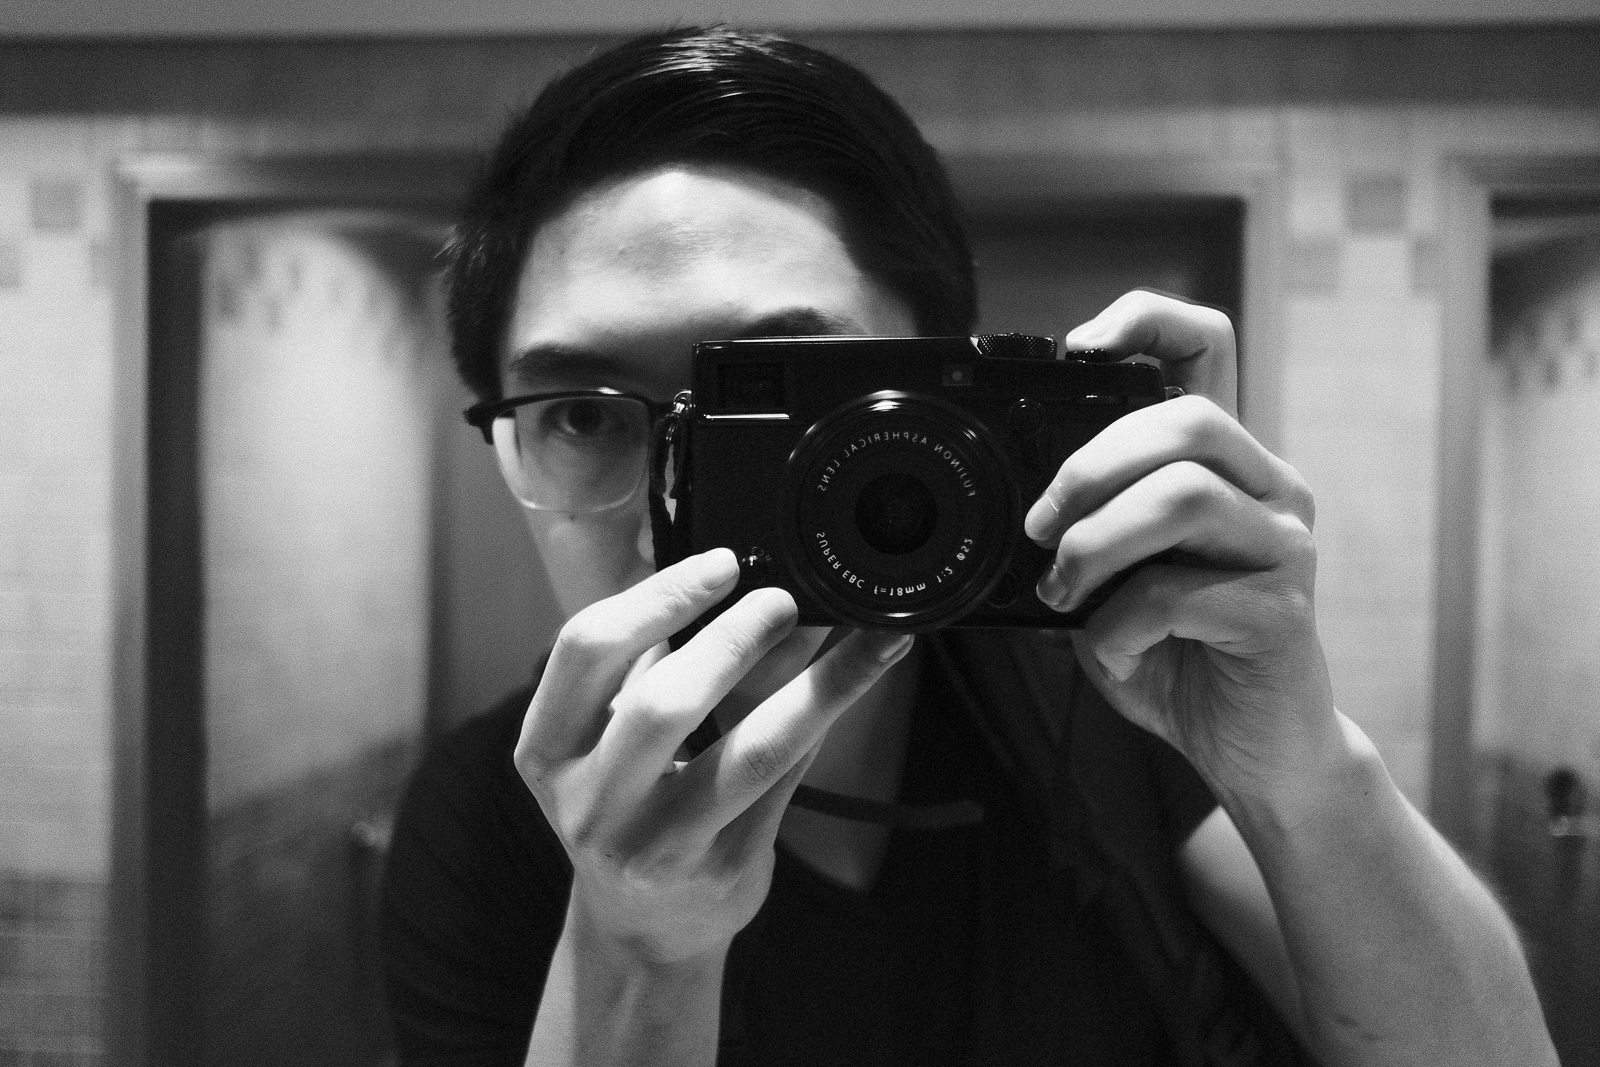 Review of the Fujifilm X-Pro 2 For Street Photography